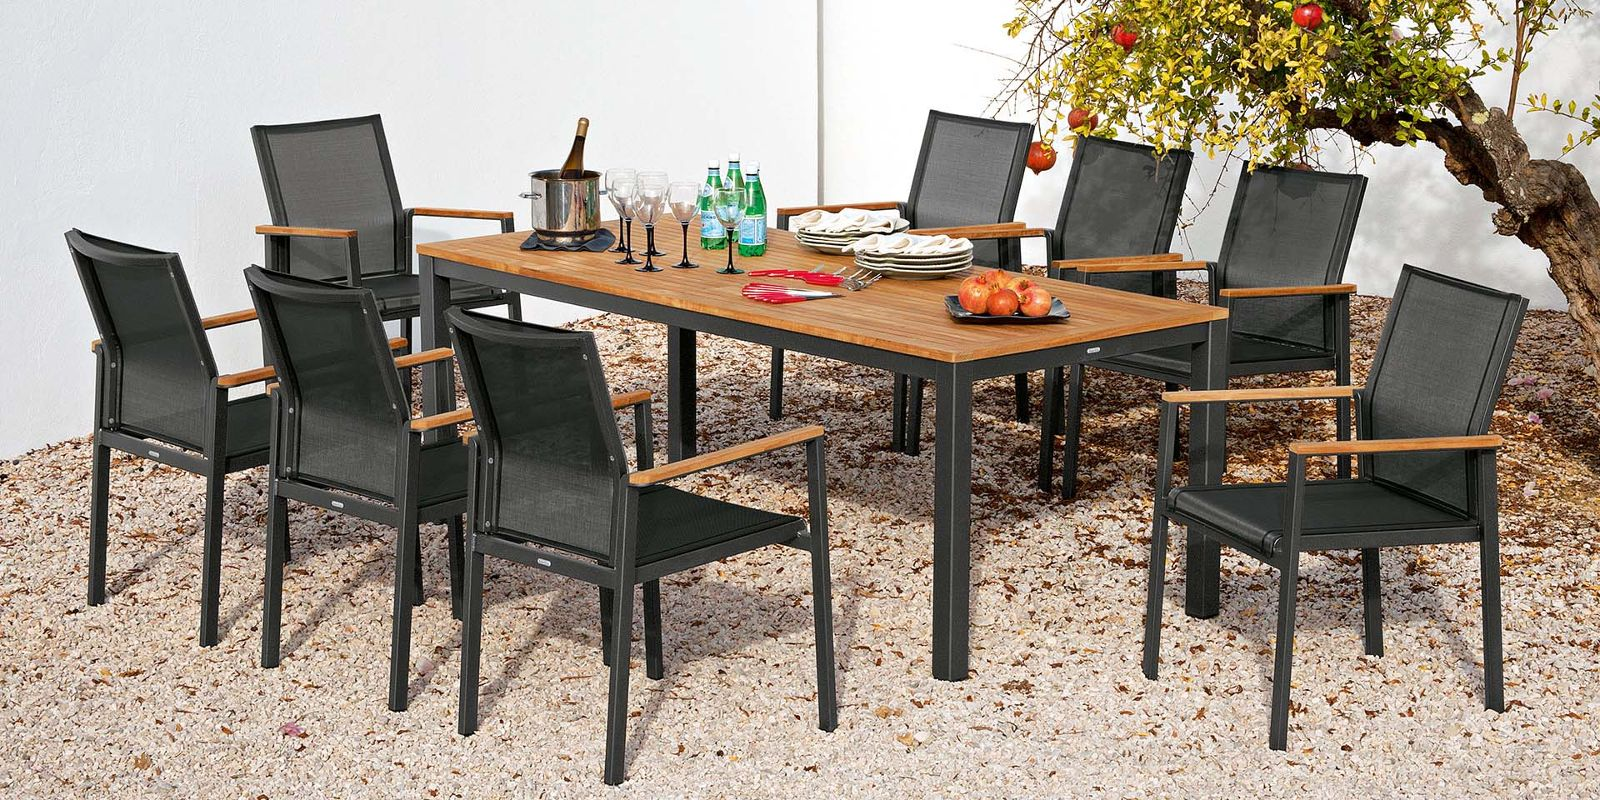 Dining furniture by barlow tyrie aura dining this range of beautiful aluminium dining furniture is light in weight making it a pleasure to use